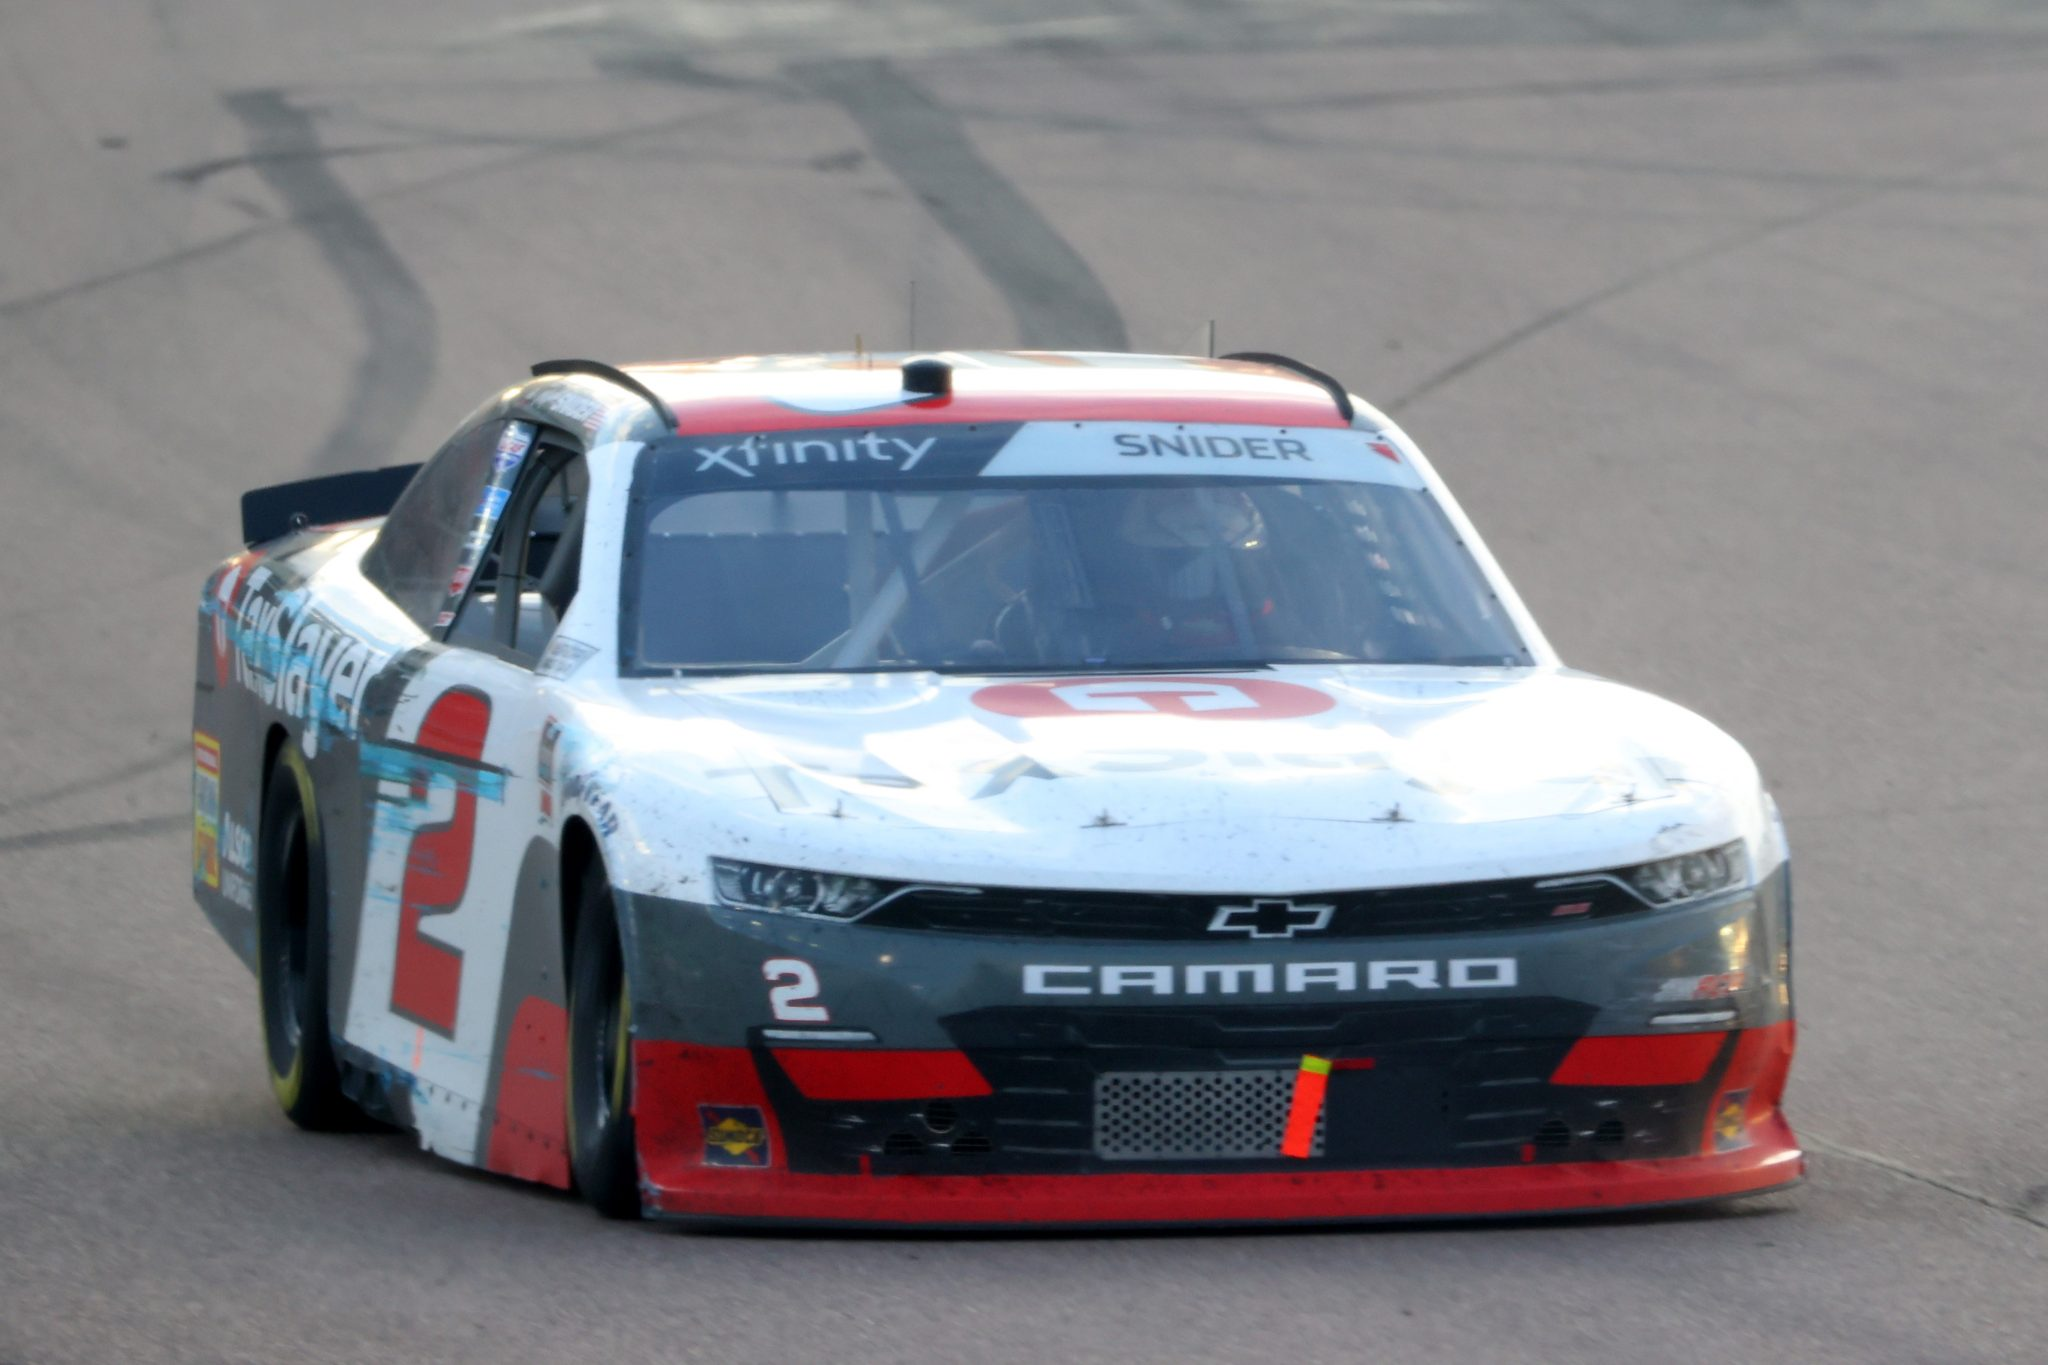 AVONDALE, ARIZONA - MARCH 13: Myatt Snider, driver of the #2 TaxSlayer Chevrolet, drives during the NASCAR Xfinity Series Call 811 Before You Dig 200 presented by Arizona 811 at Phoenix Raceway on March 13, 2021 in Avondale, Arizona. (Photo by Abbie Parr/Getty Images) | Getty Images